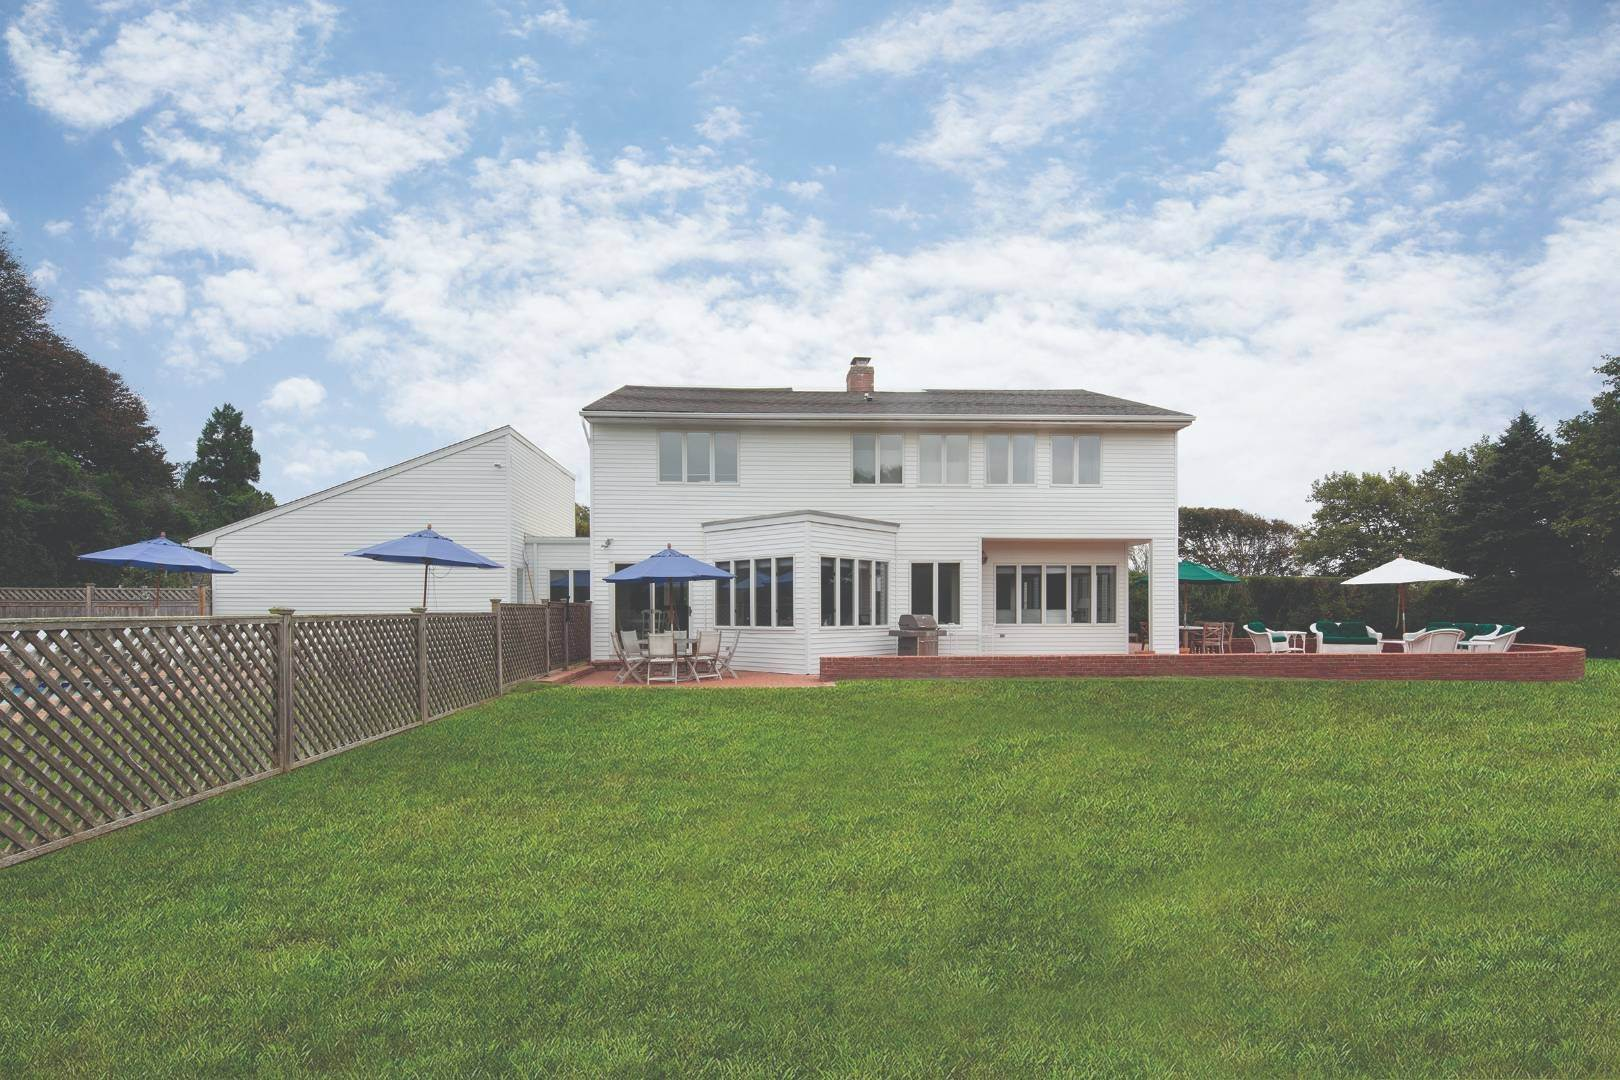 2. Single Family Home at Gin Lane Beach Classic Southampton, NY 11968